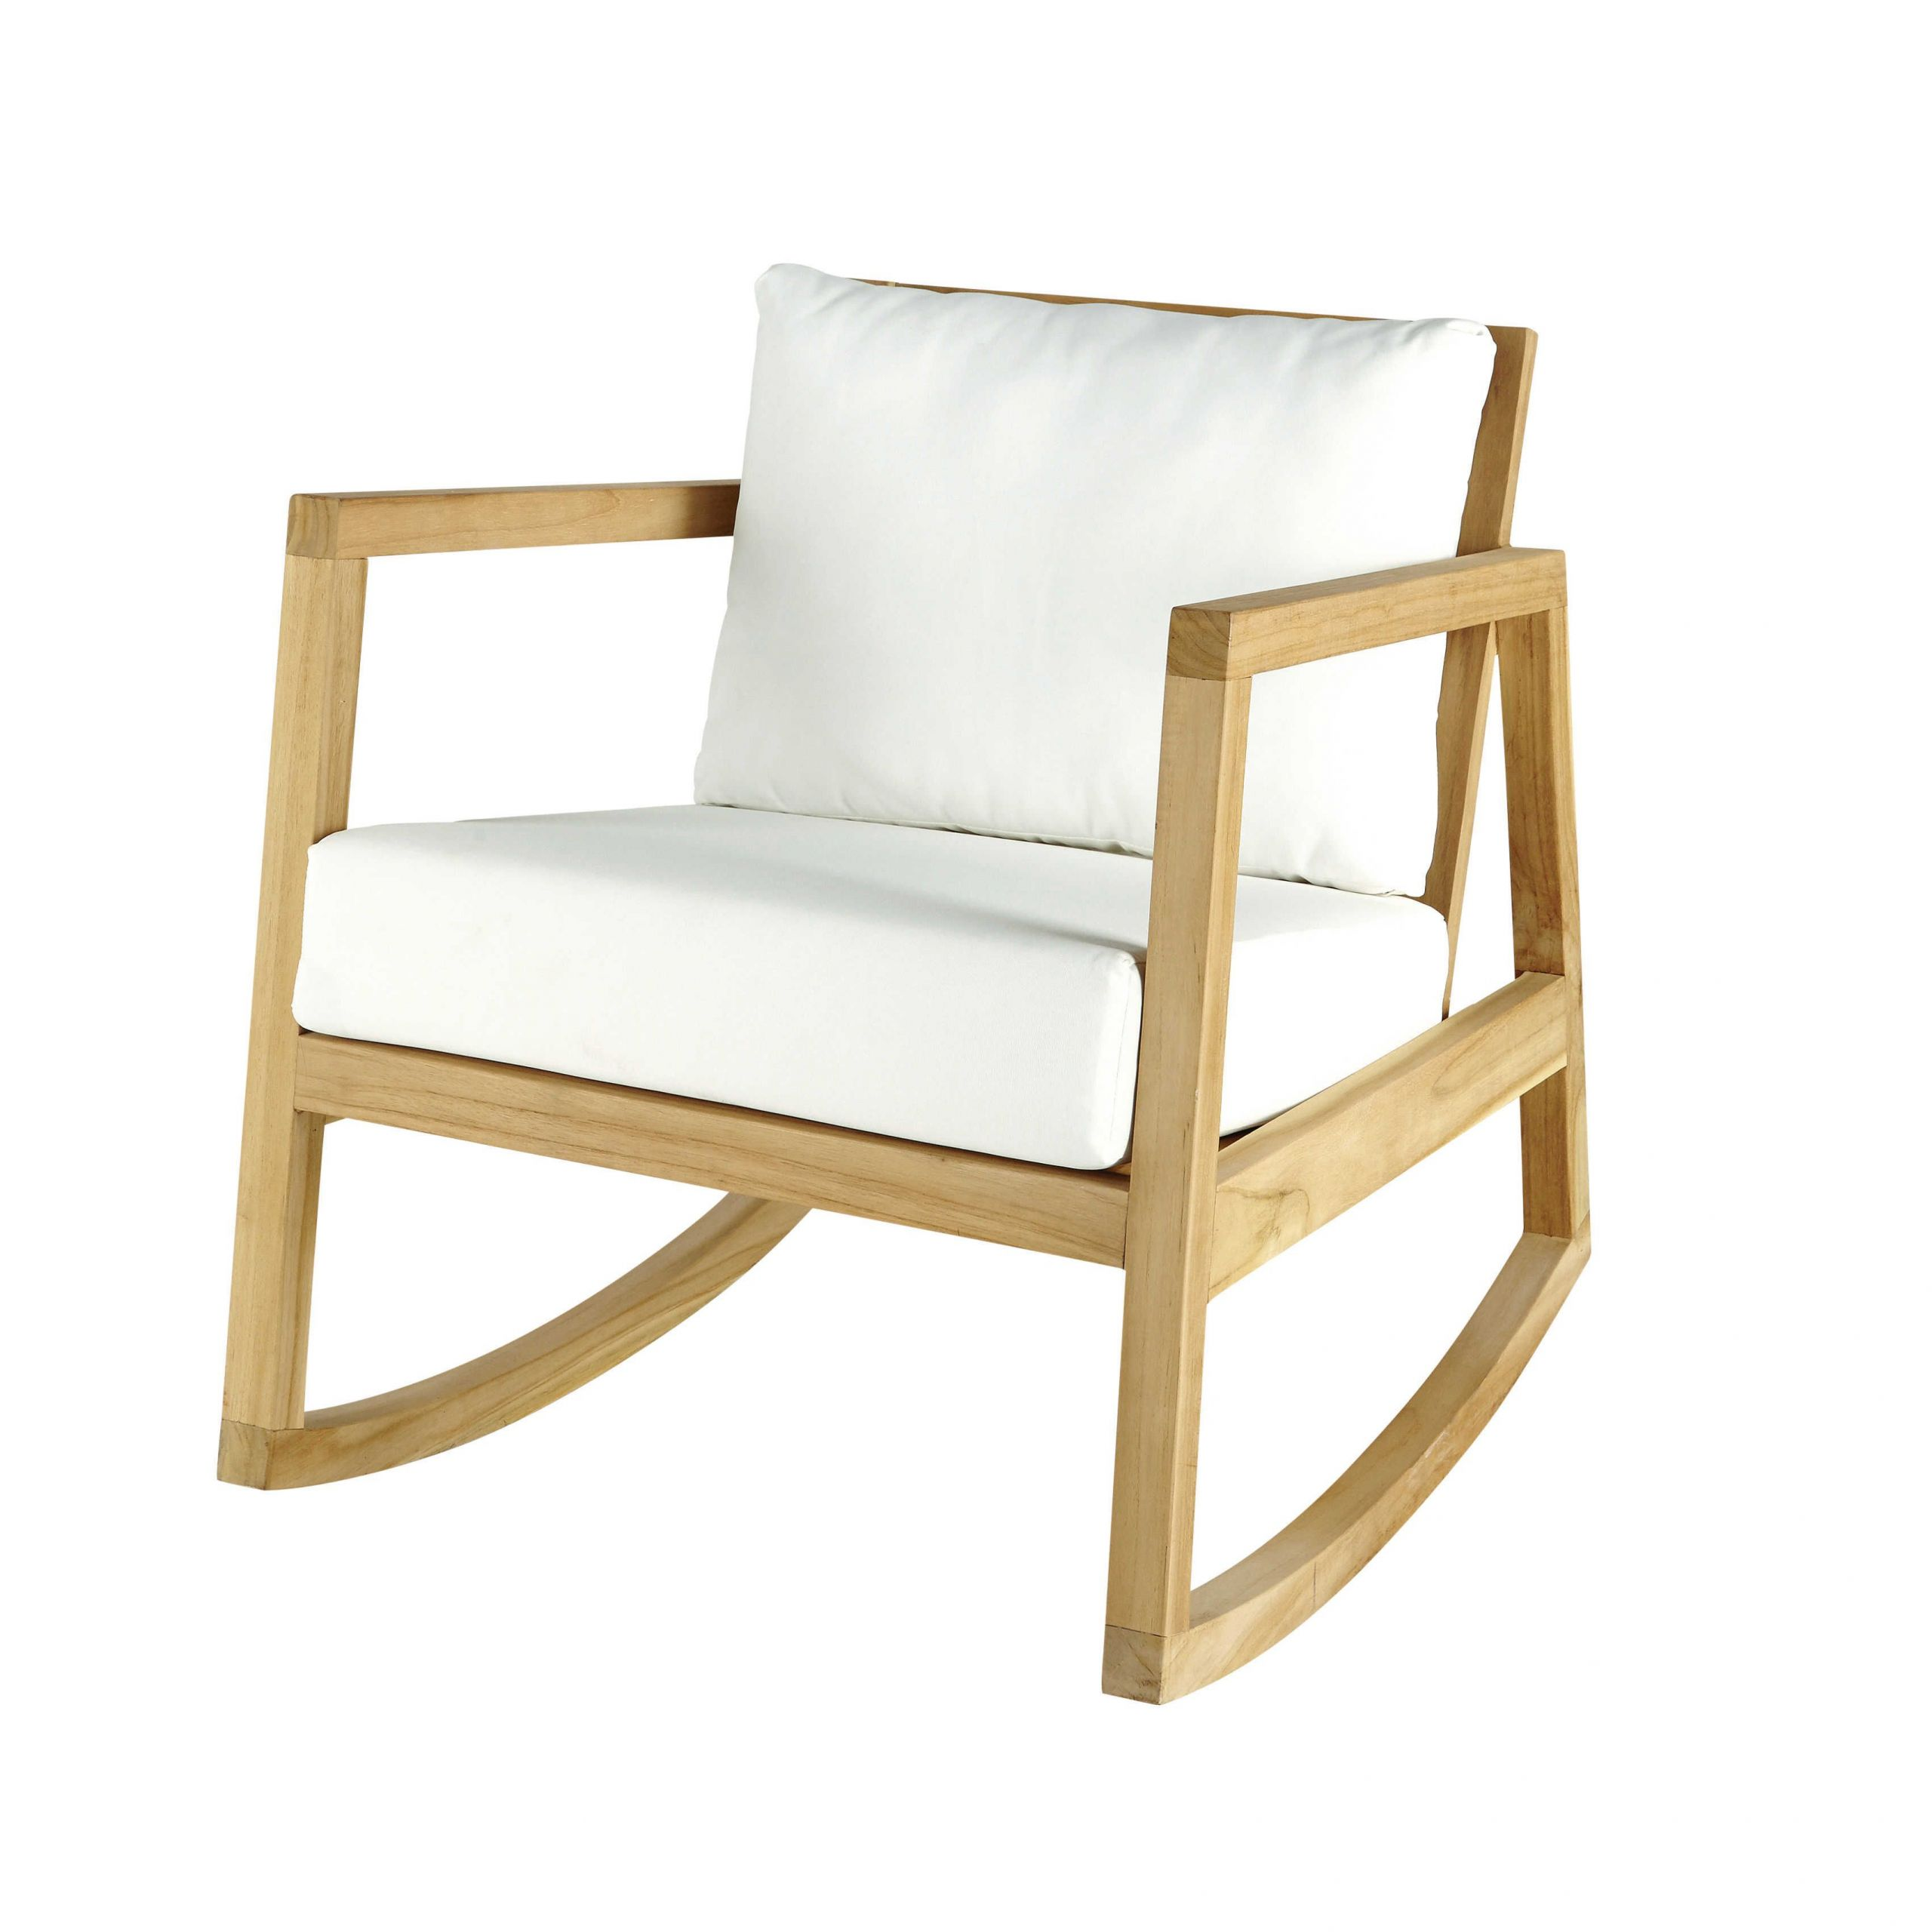 rocking chair blanche national photograph with beau fauteuil a bascule alinea chaise bascule blanche fauteuil rocking chair blanc alinea table of